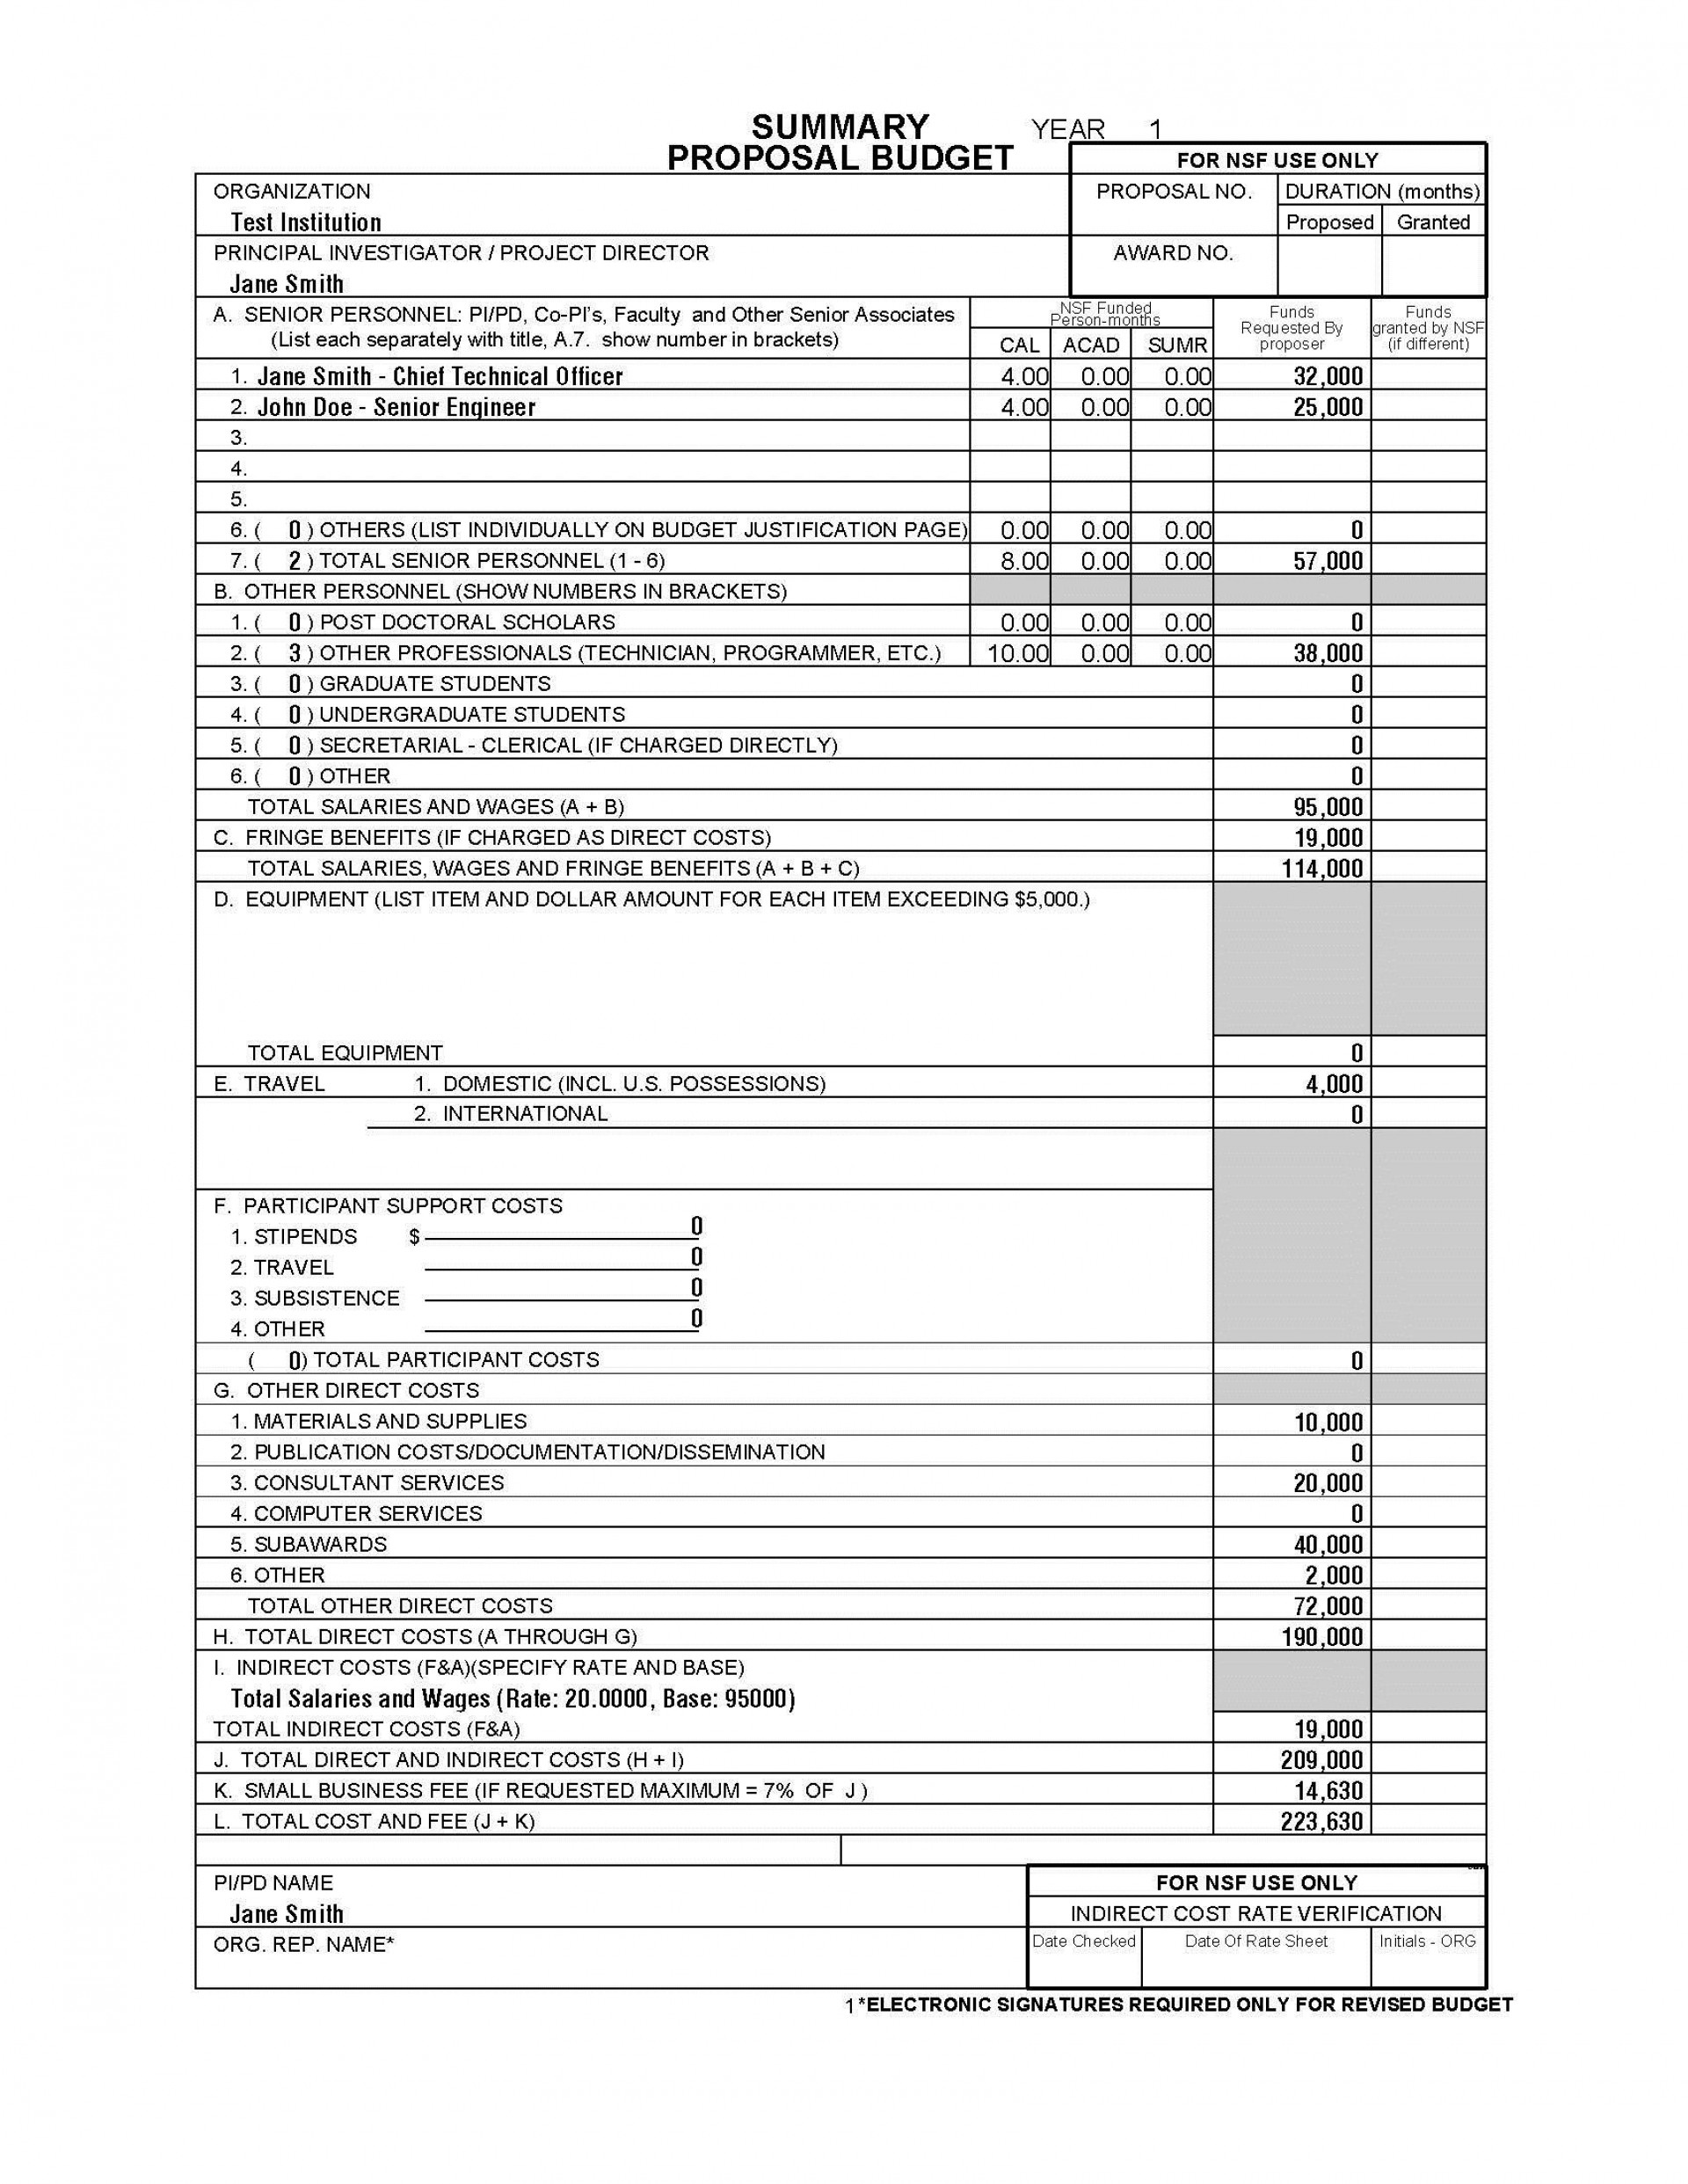 002 Breathtaking Line Item Budget Sample High Definition  Church For Grant Proposal Format1920